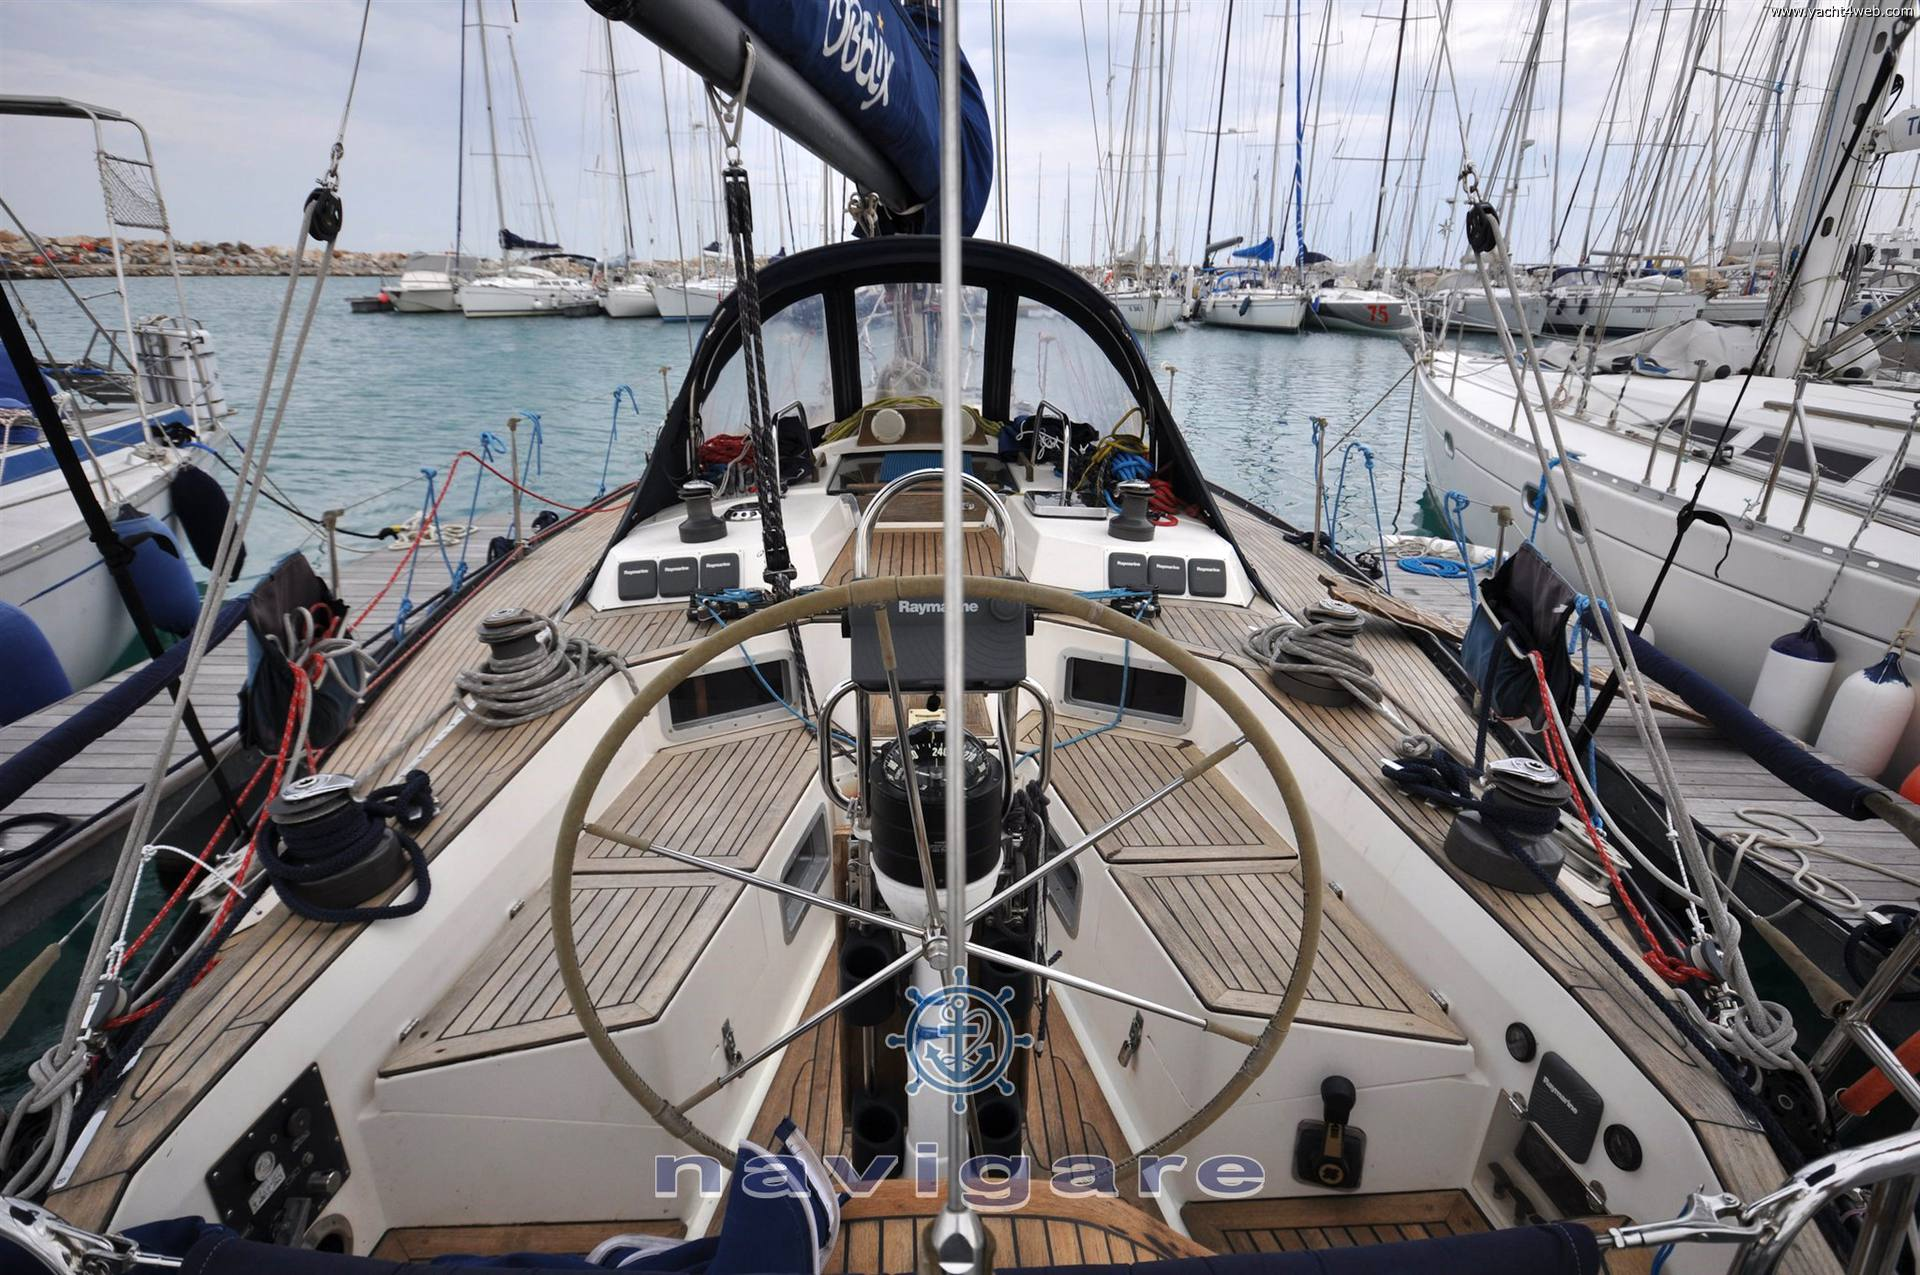 Baltic Yachts Baltic 38 dp Sailing boat used for sale